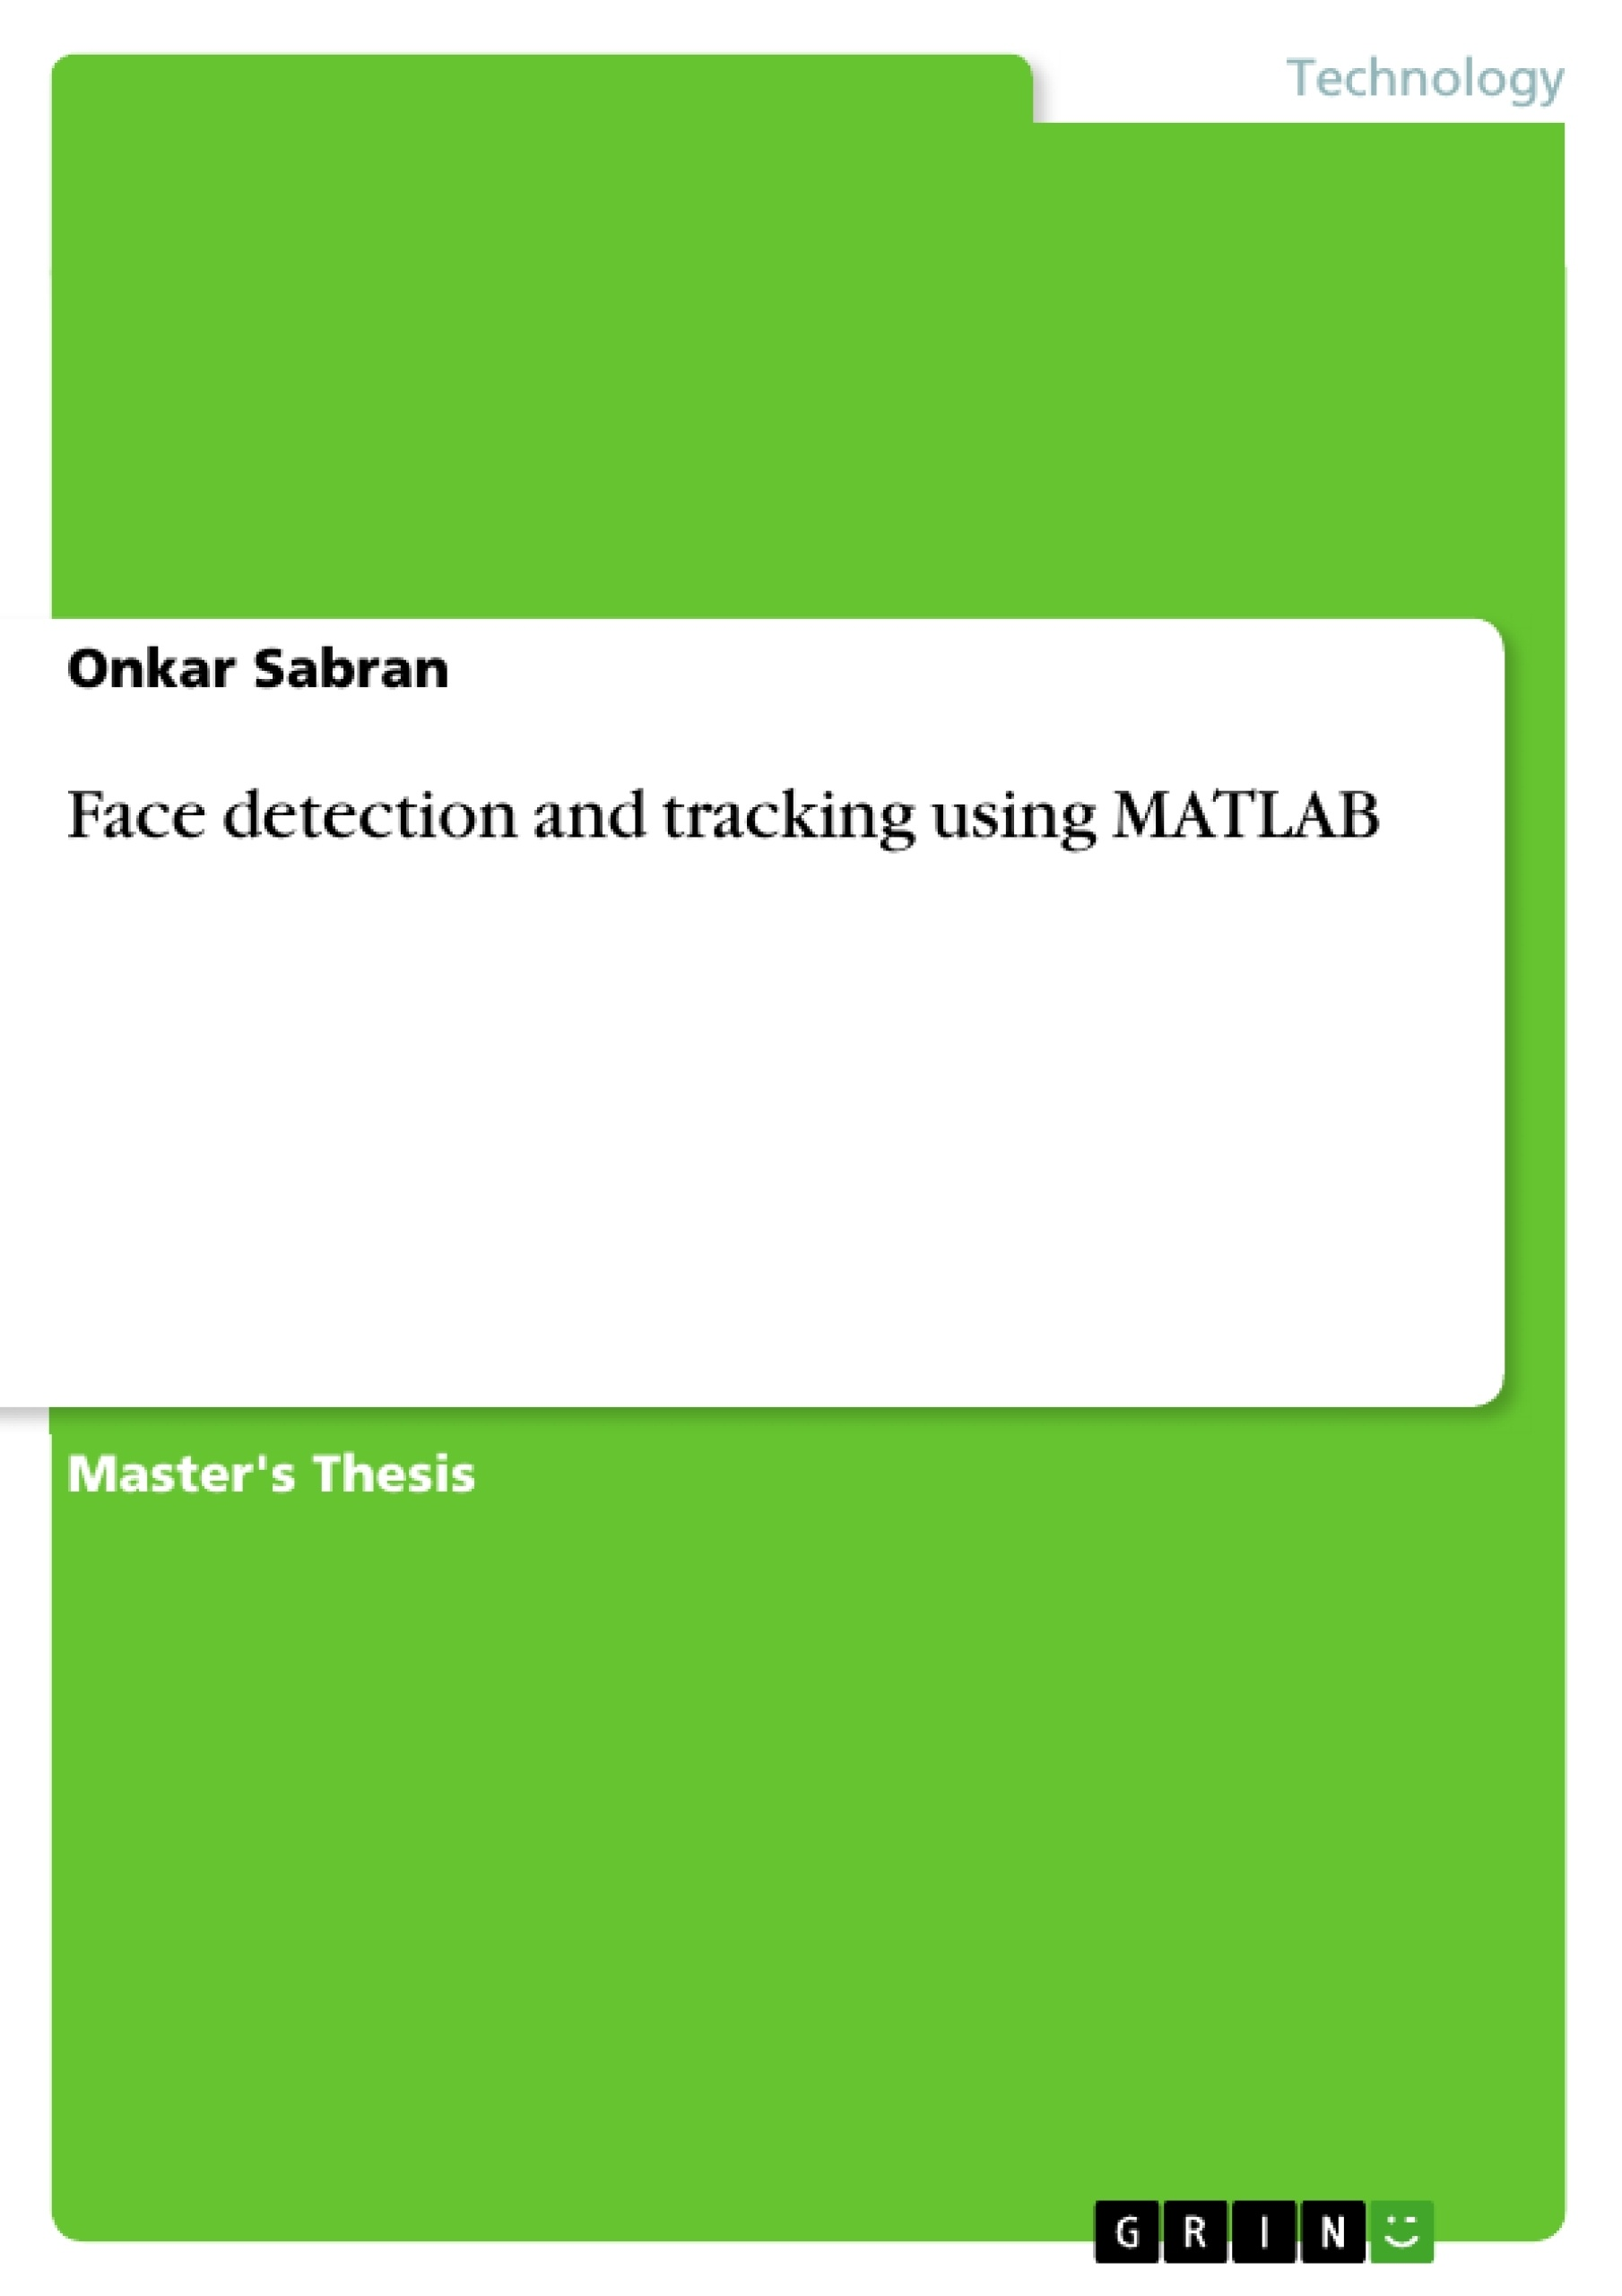 Title: Face detection and tracking using MATLAB